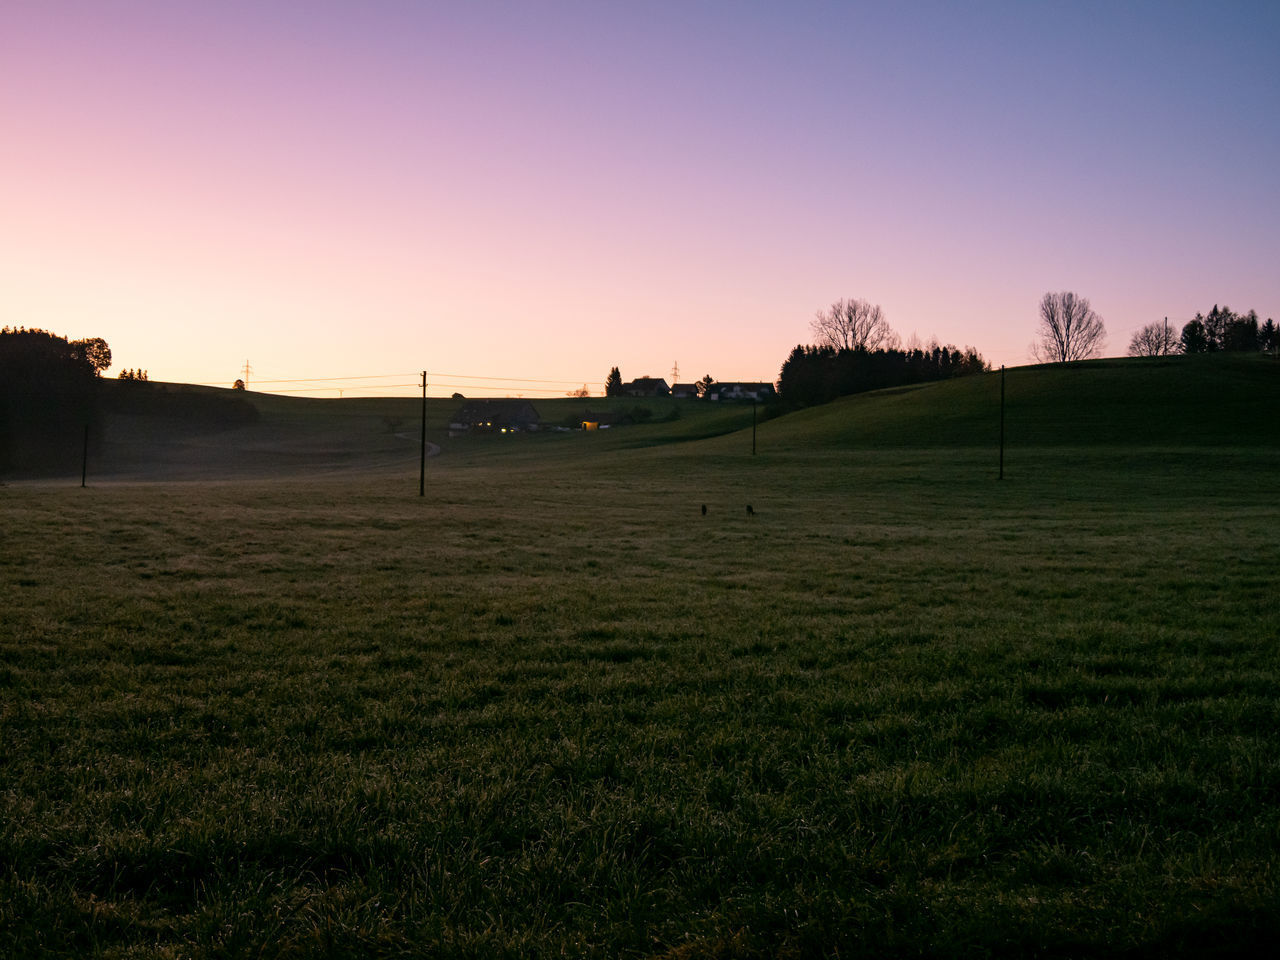 sky, sunset, grass, scenics - nature, beauty in nature, tranquil scene, plant, tranquility, landscape, environment, land, sport, green color, nature, field, no people, orange color, idyllic, non-urban scene, golf, outdoors